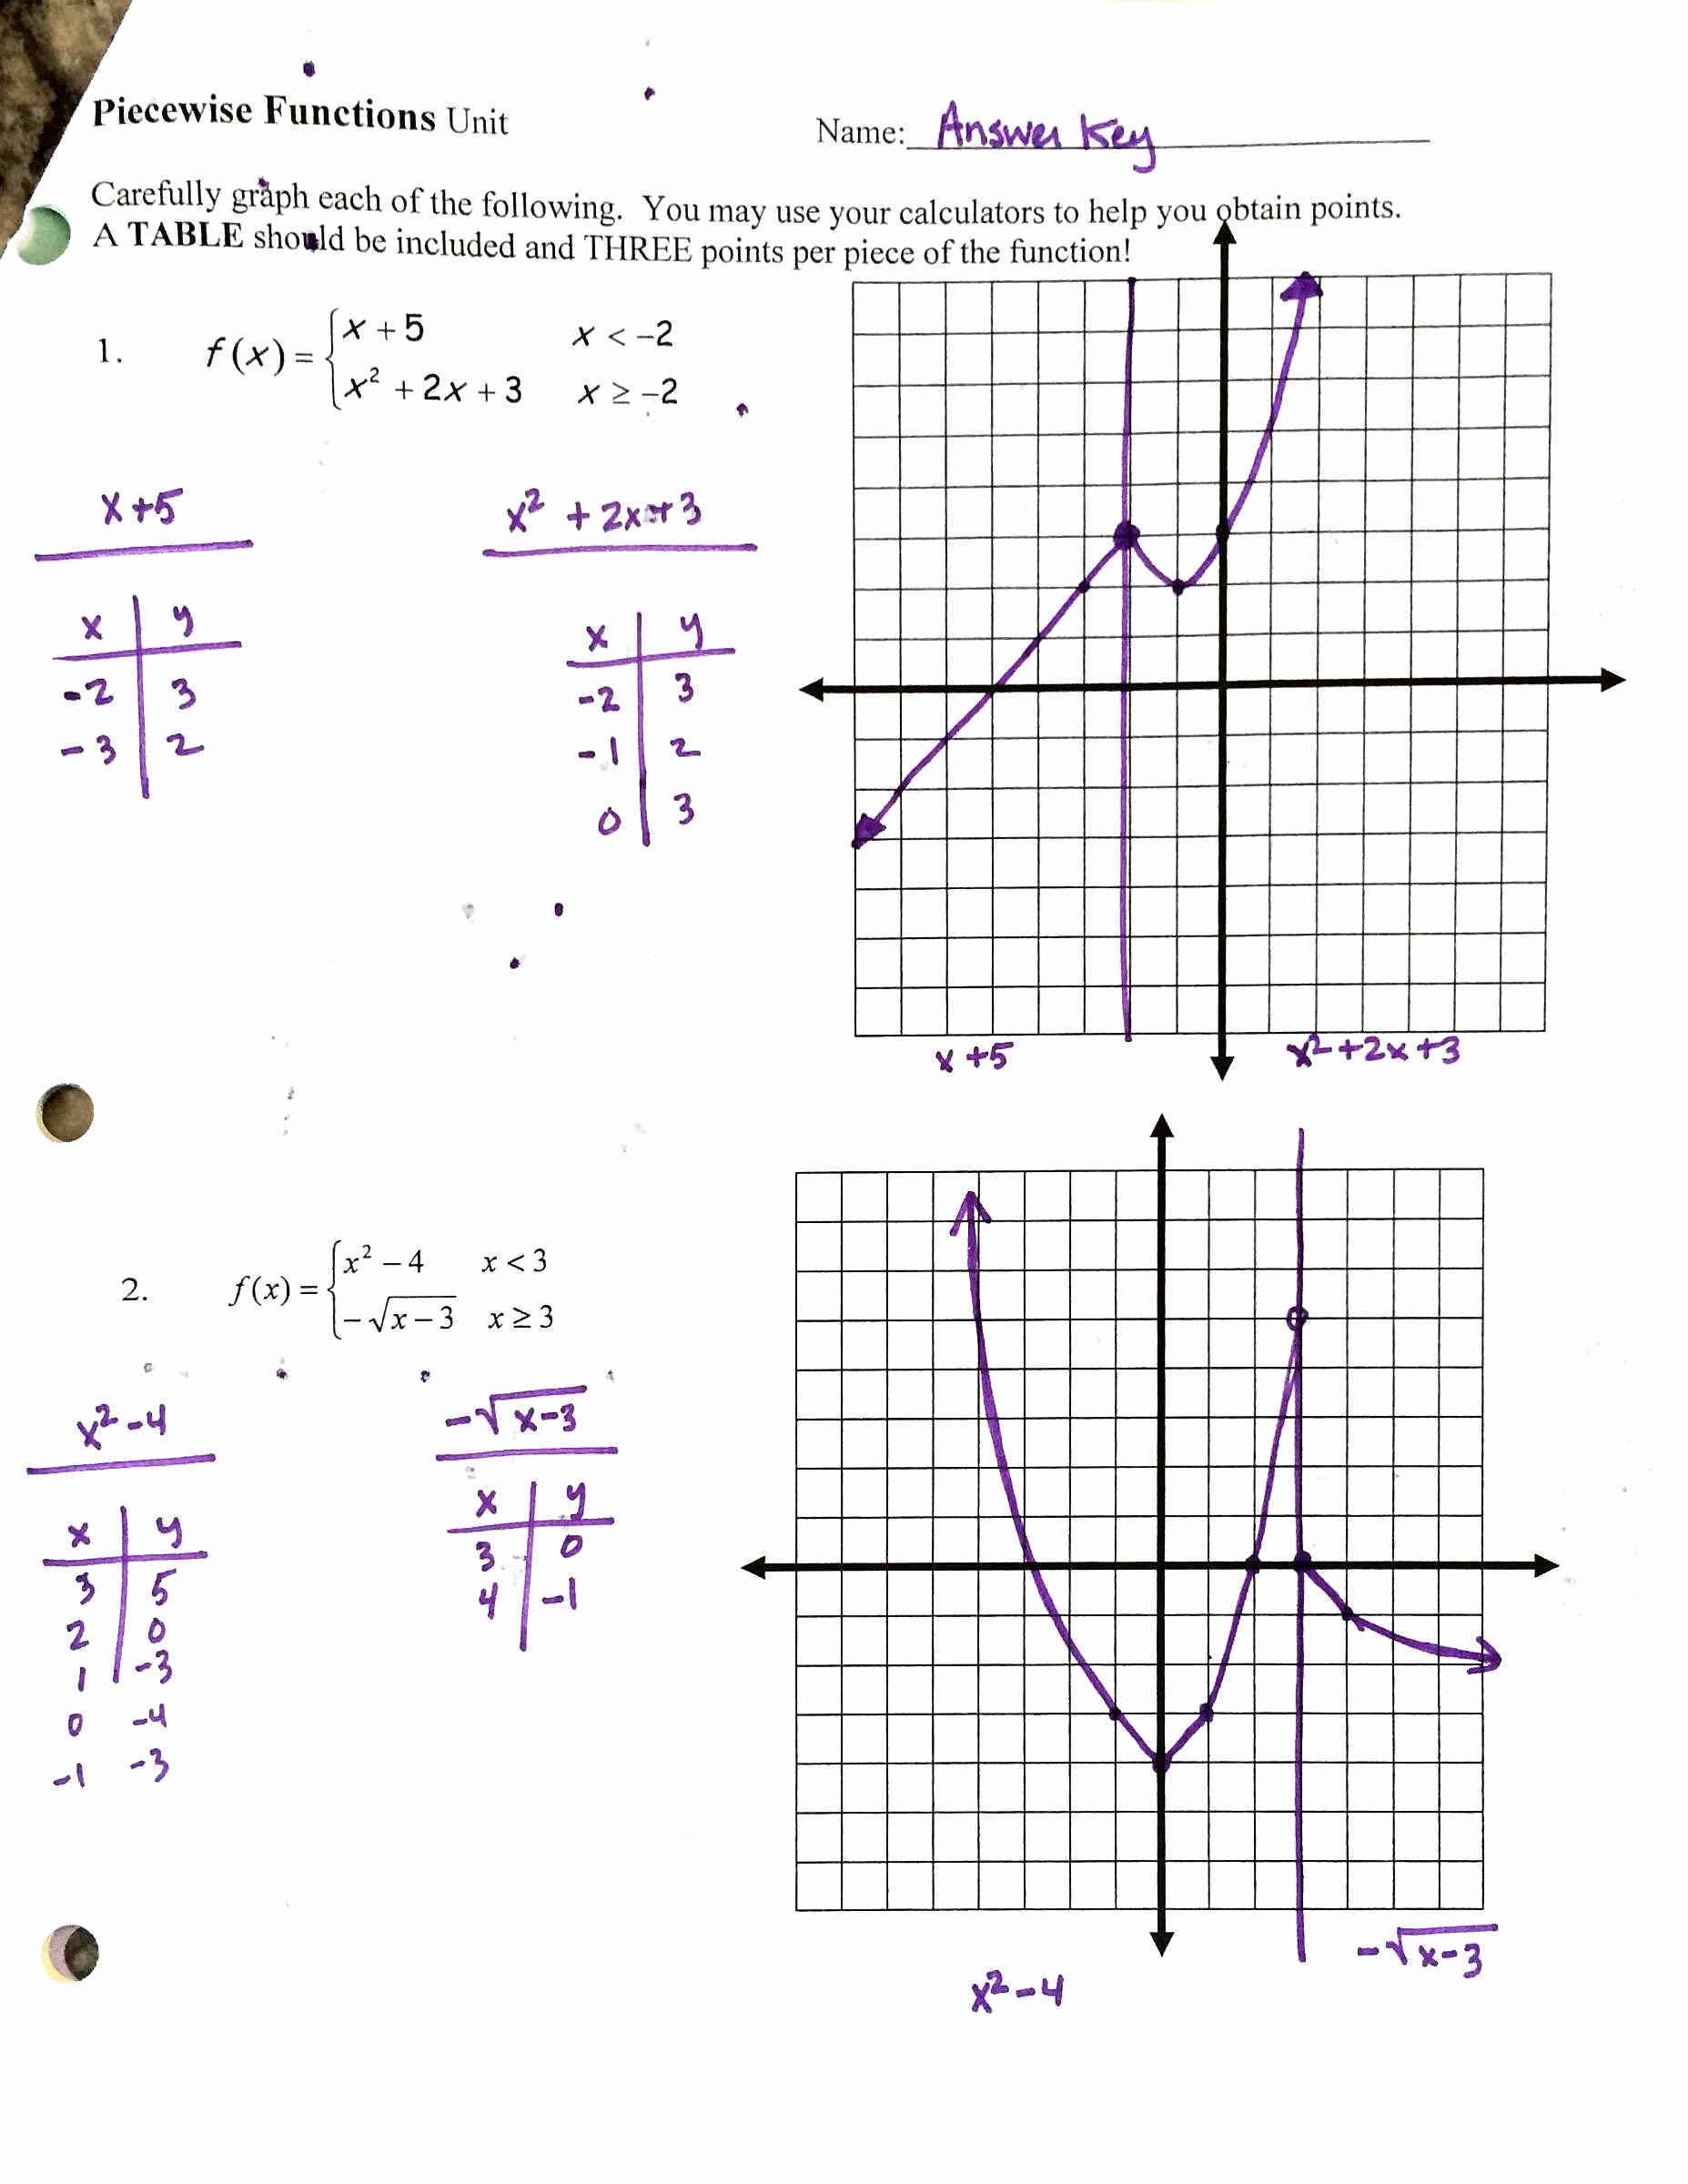 Piecewise Functions Worksheet with Answers Elegant Worksheet 1 8 Homework Piecewise Functions Key